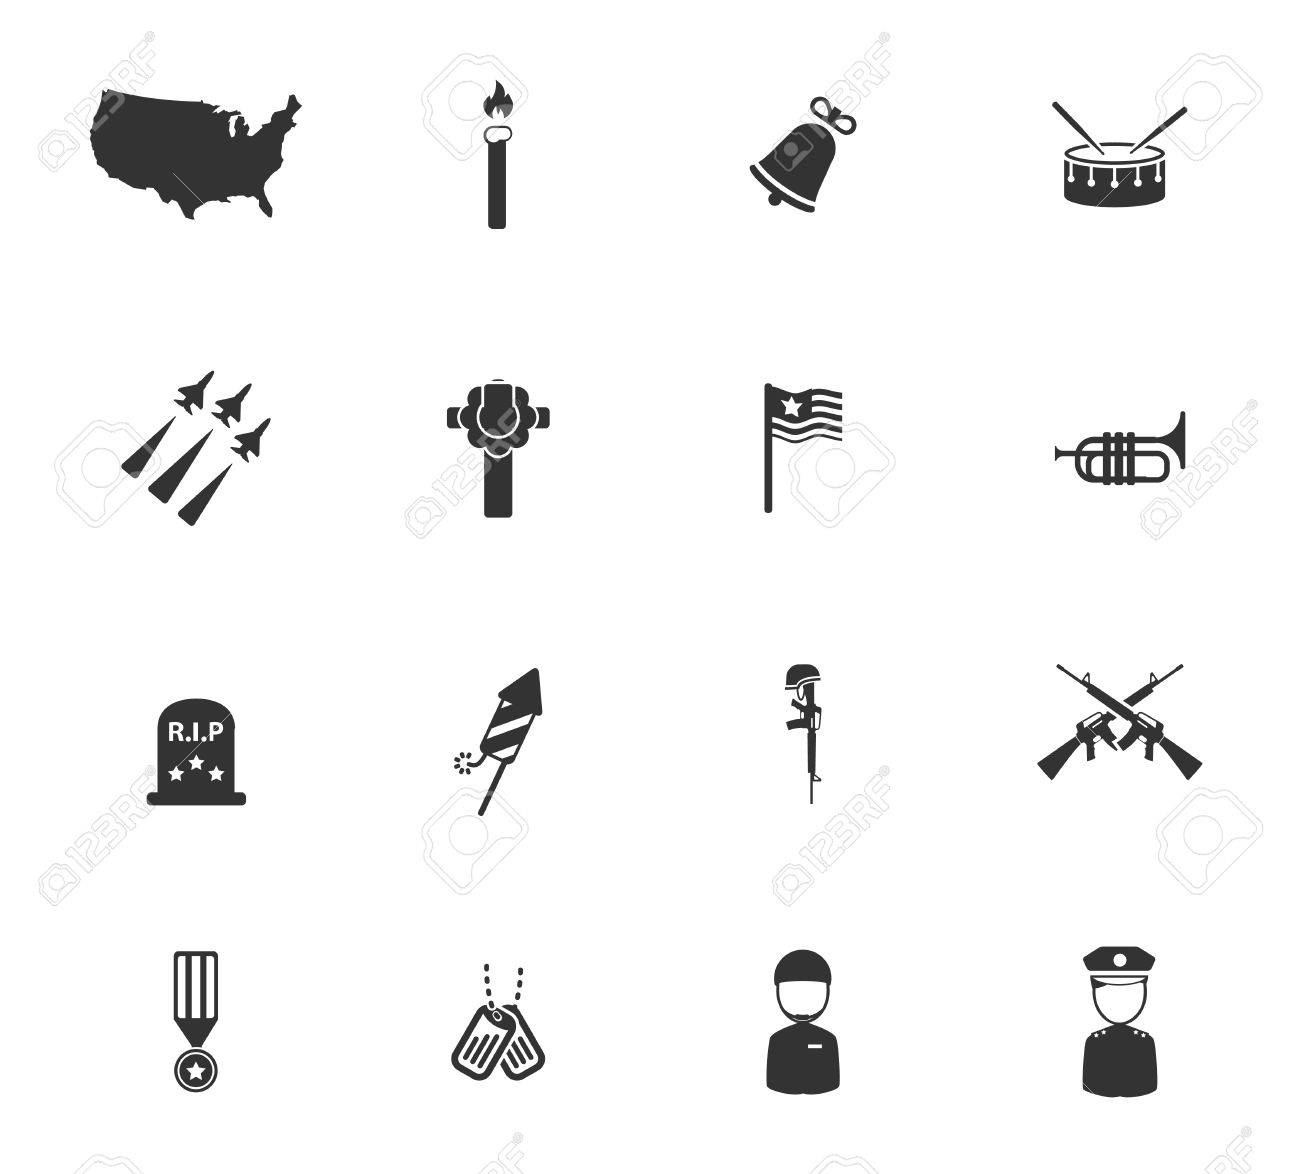 Memorial day simply symbols for web icons royalty free cliparts memorial day simply symbols for web icons stock vector 47308901 biocorpaavc